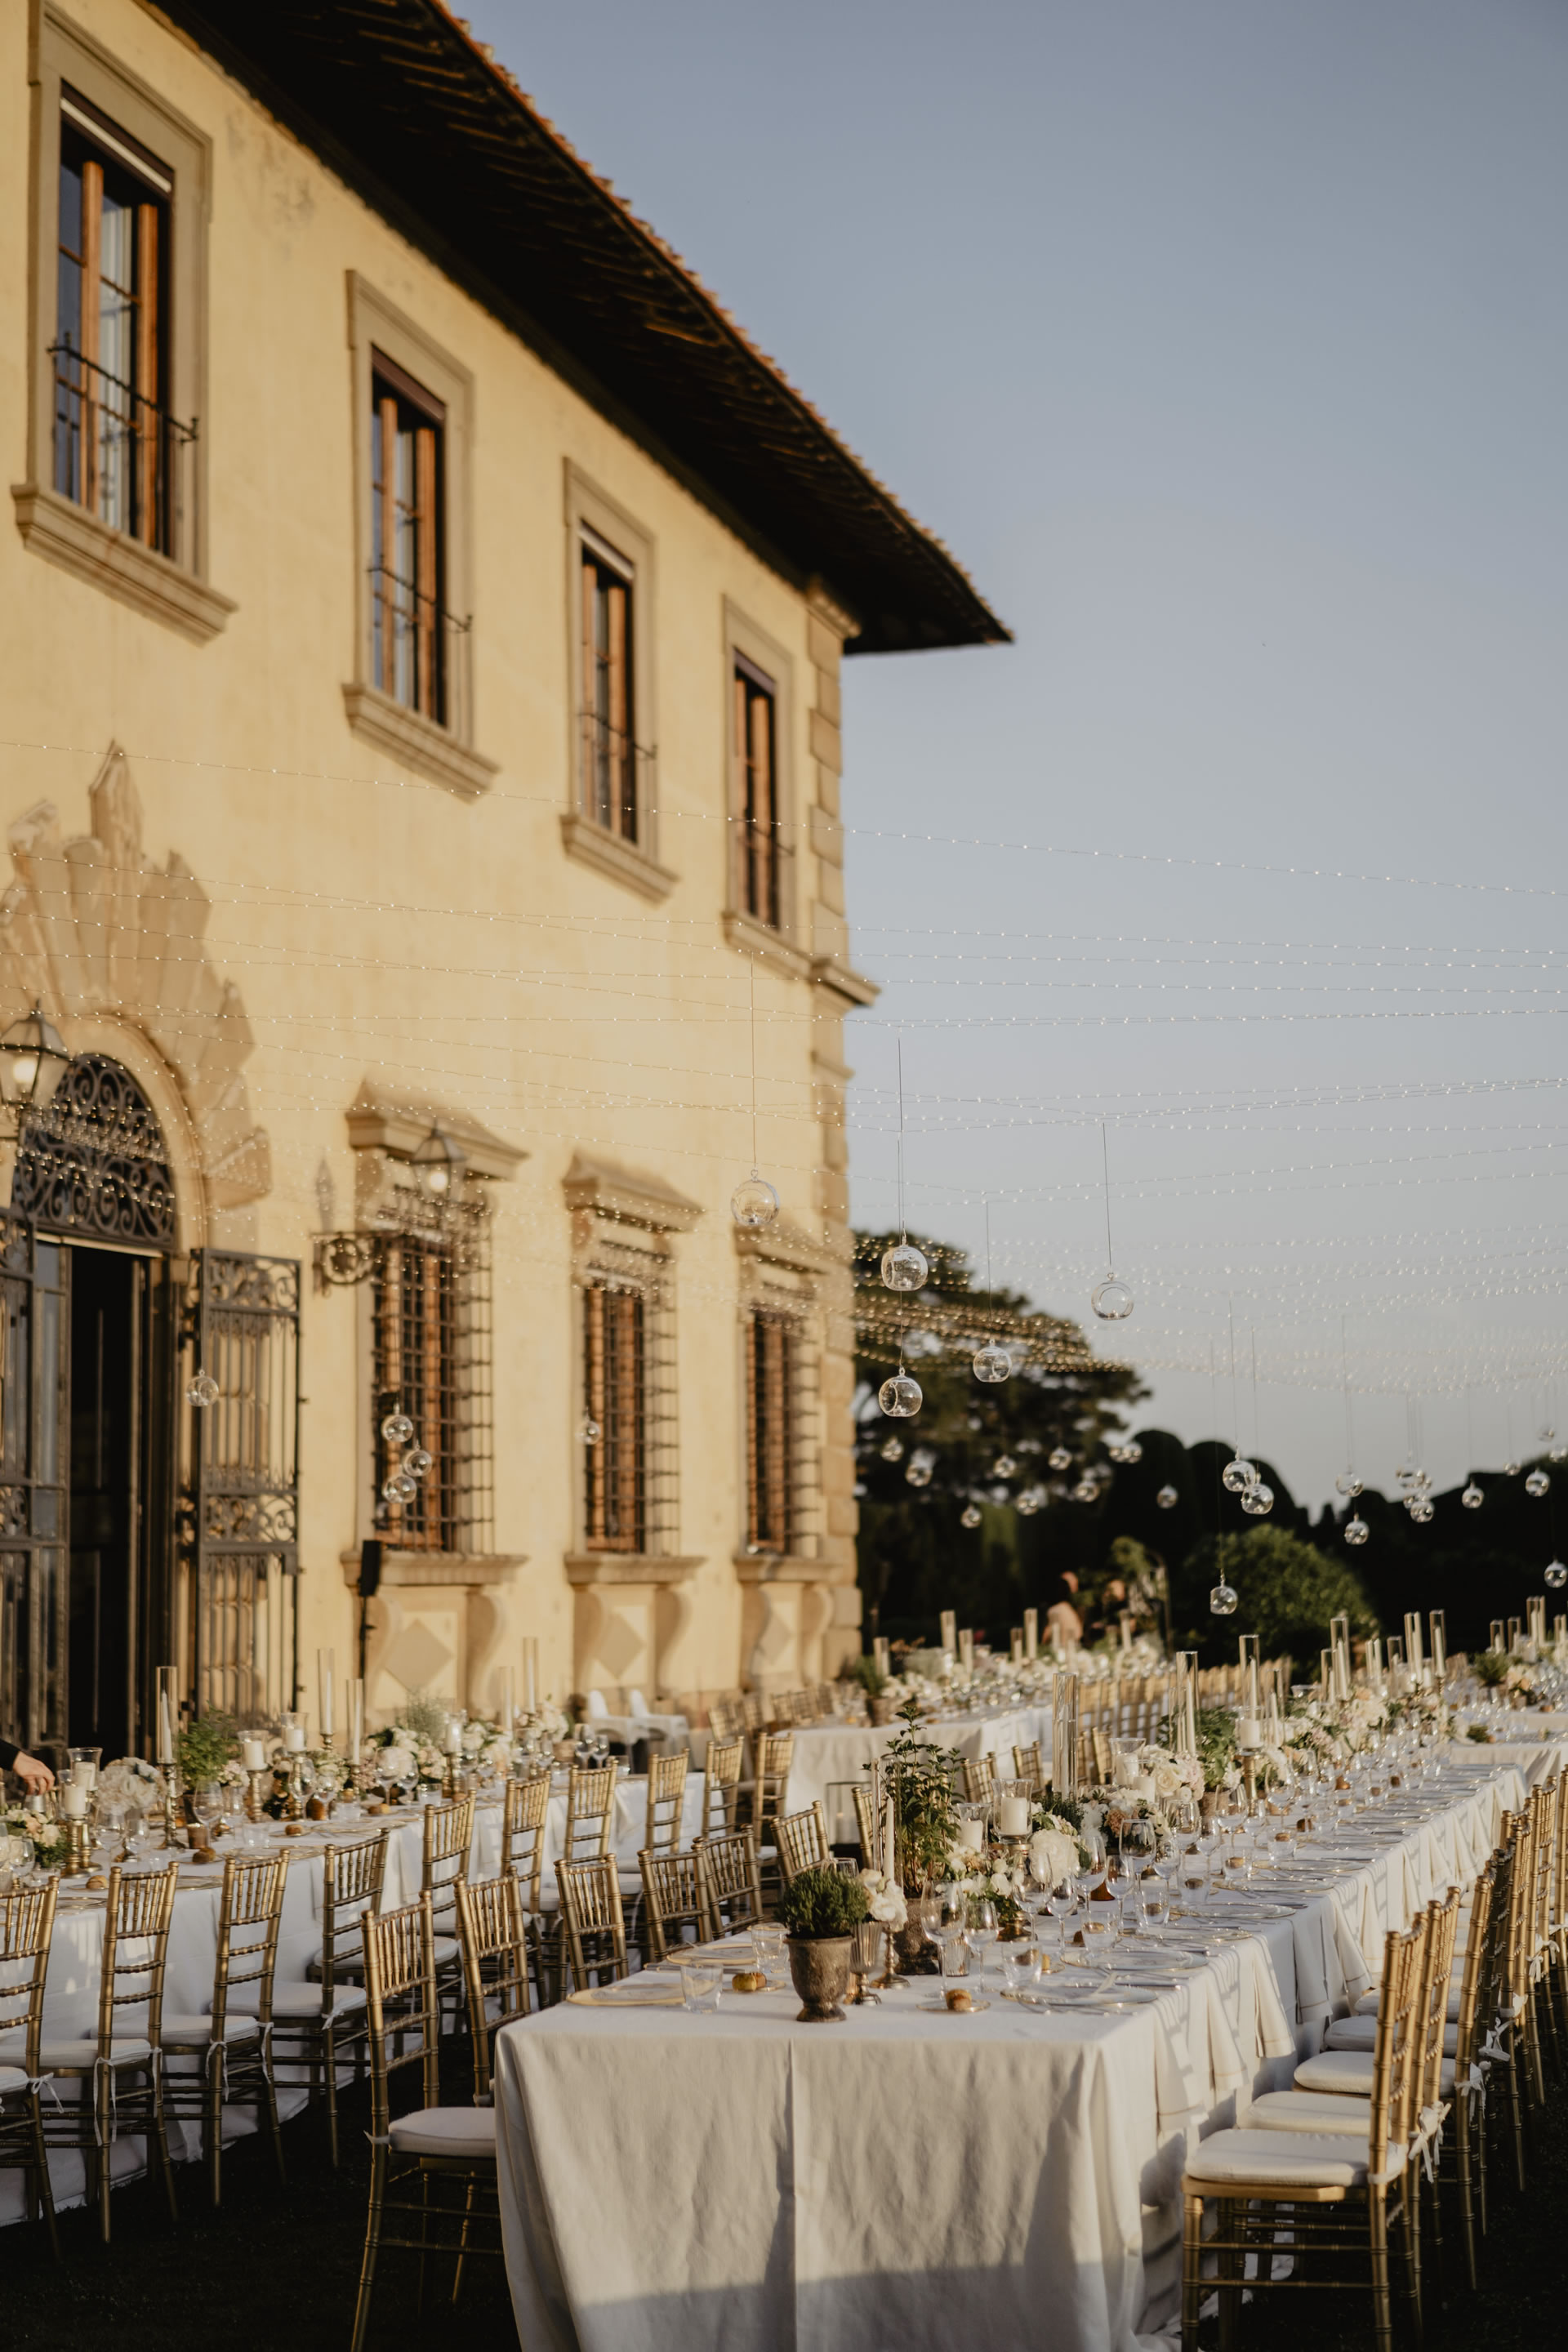 - 69 :: From Los angeles to Florence: a glamour asiatic wedding :: Luxury wedding photography - 68 ::  - 69